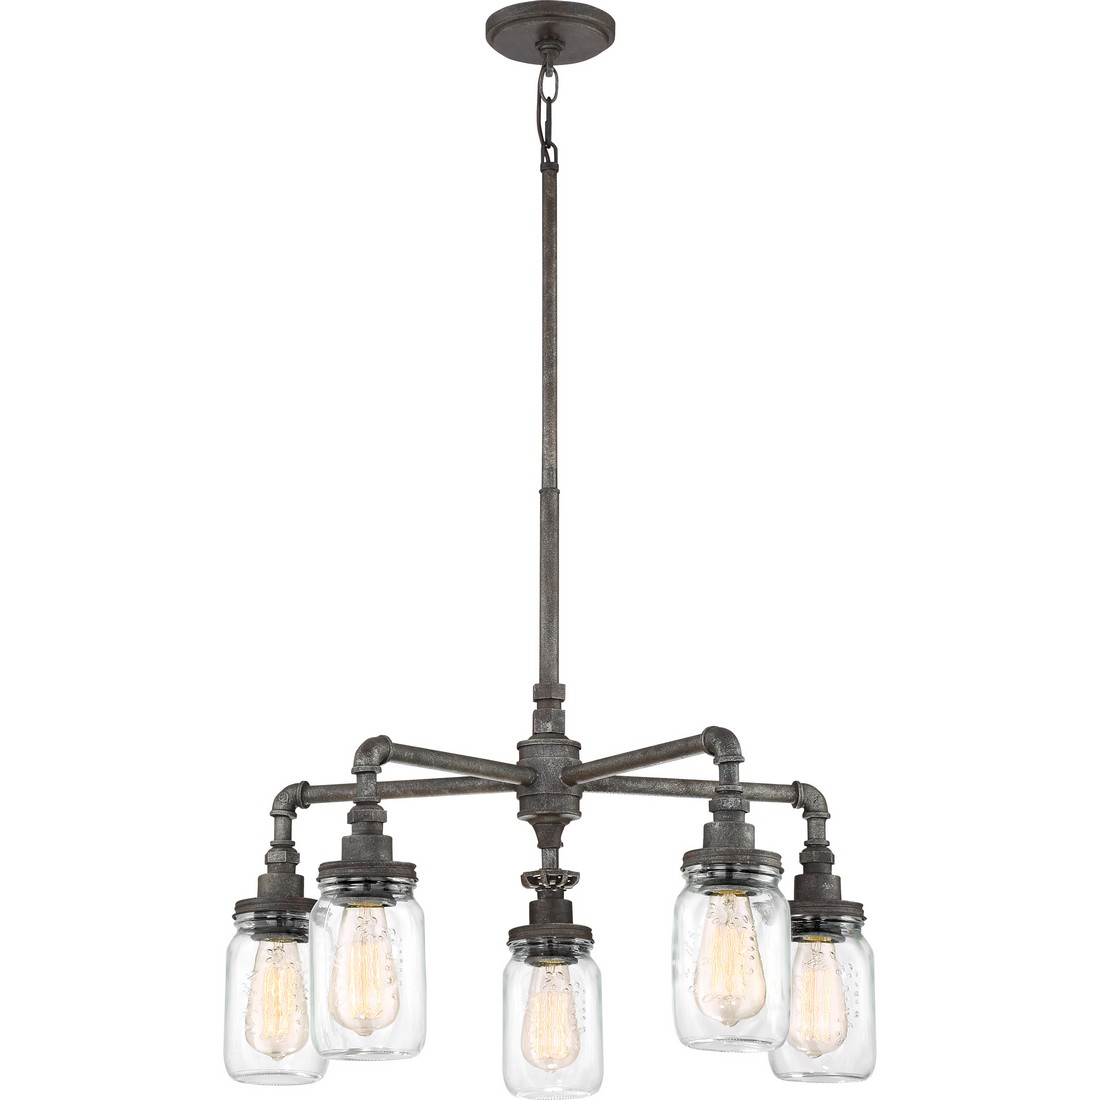 Quoizel Squire 26 5 Light Clear Glass Chandelier In